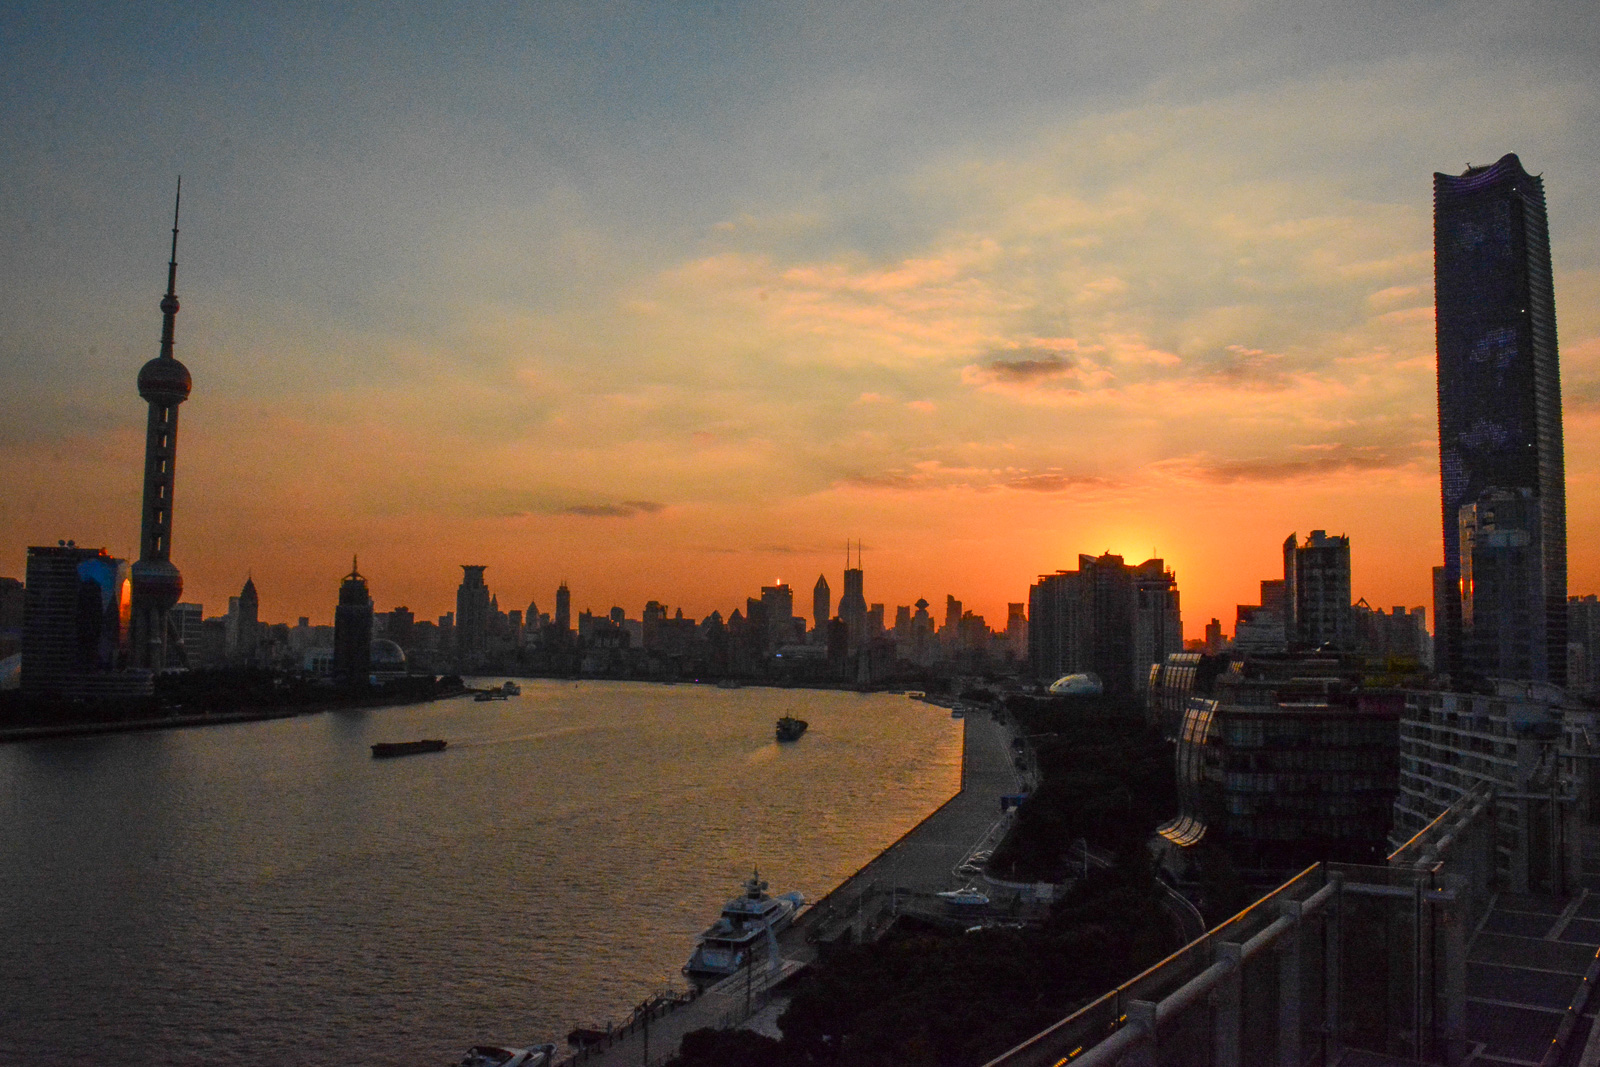 Sunset view from the rooftop bar.